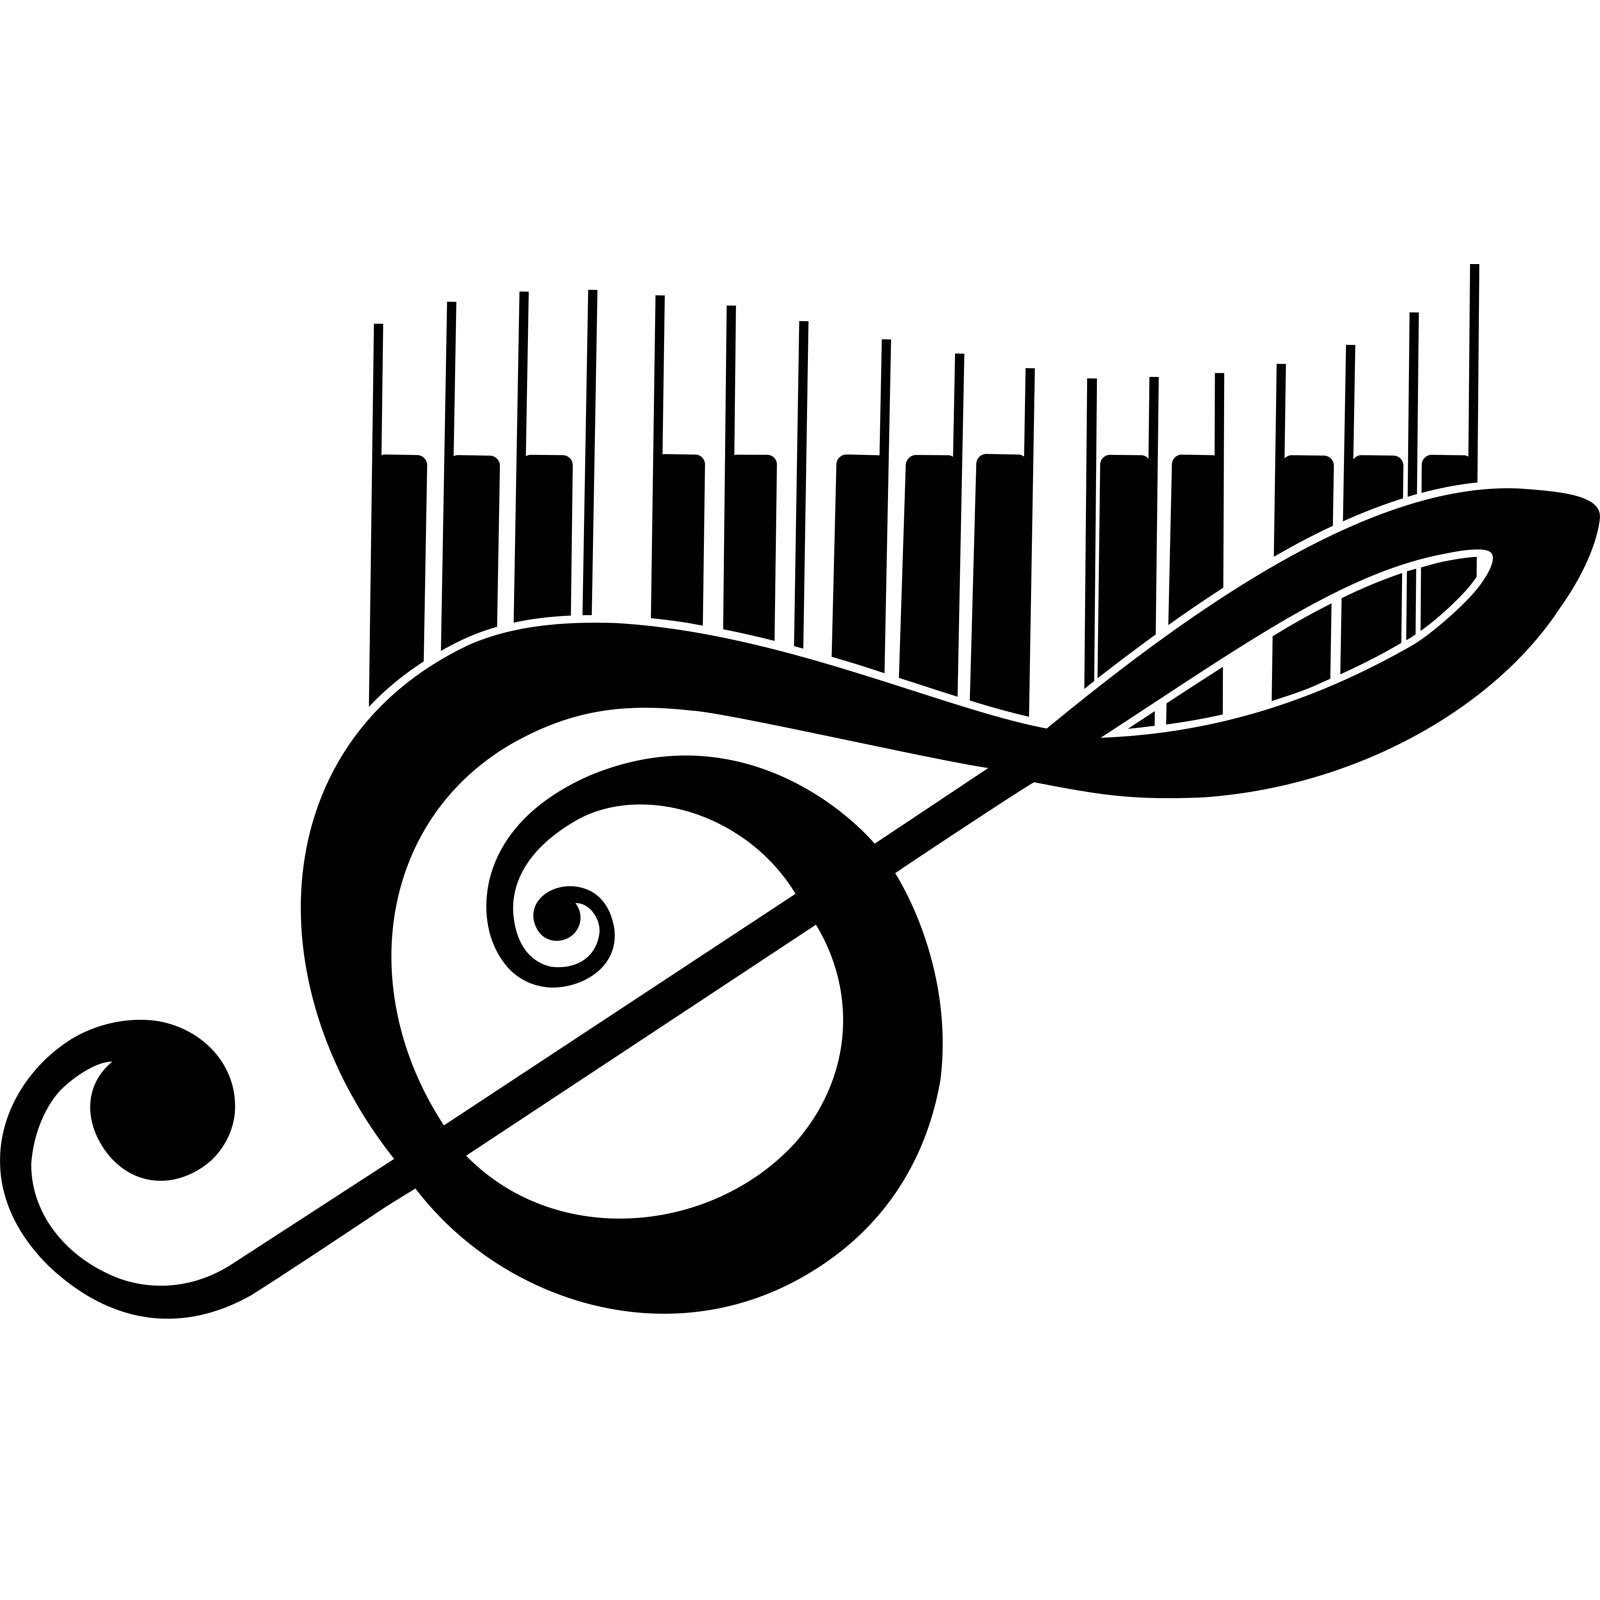 Treble Clef And Piano Keys Musical Wall Sticker Decal